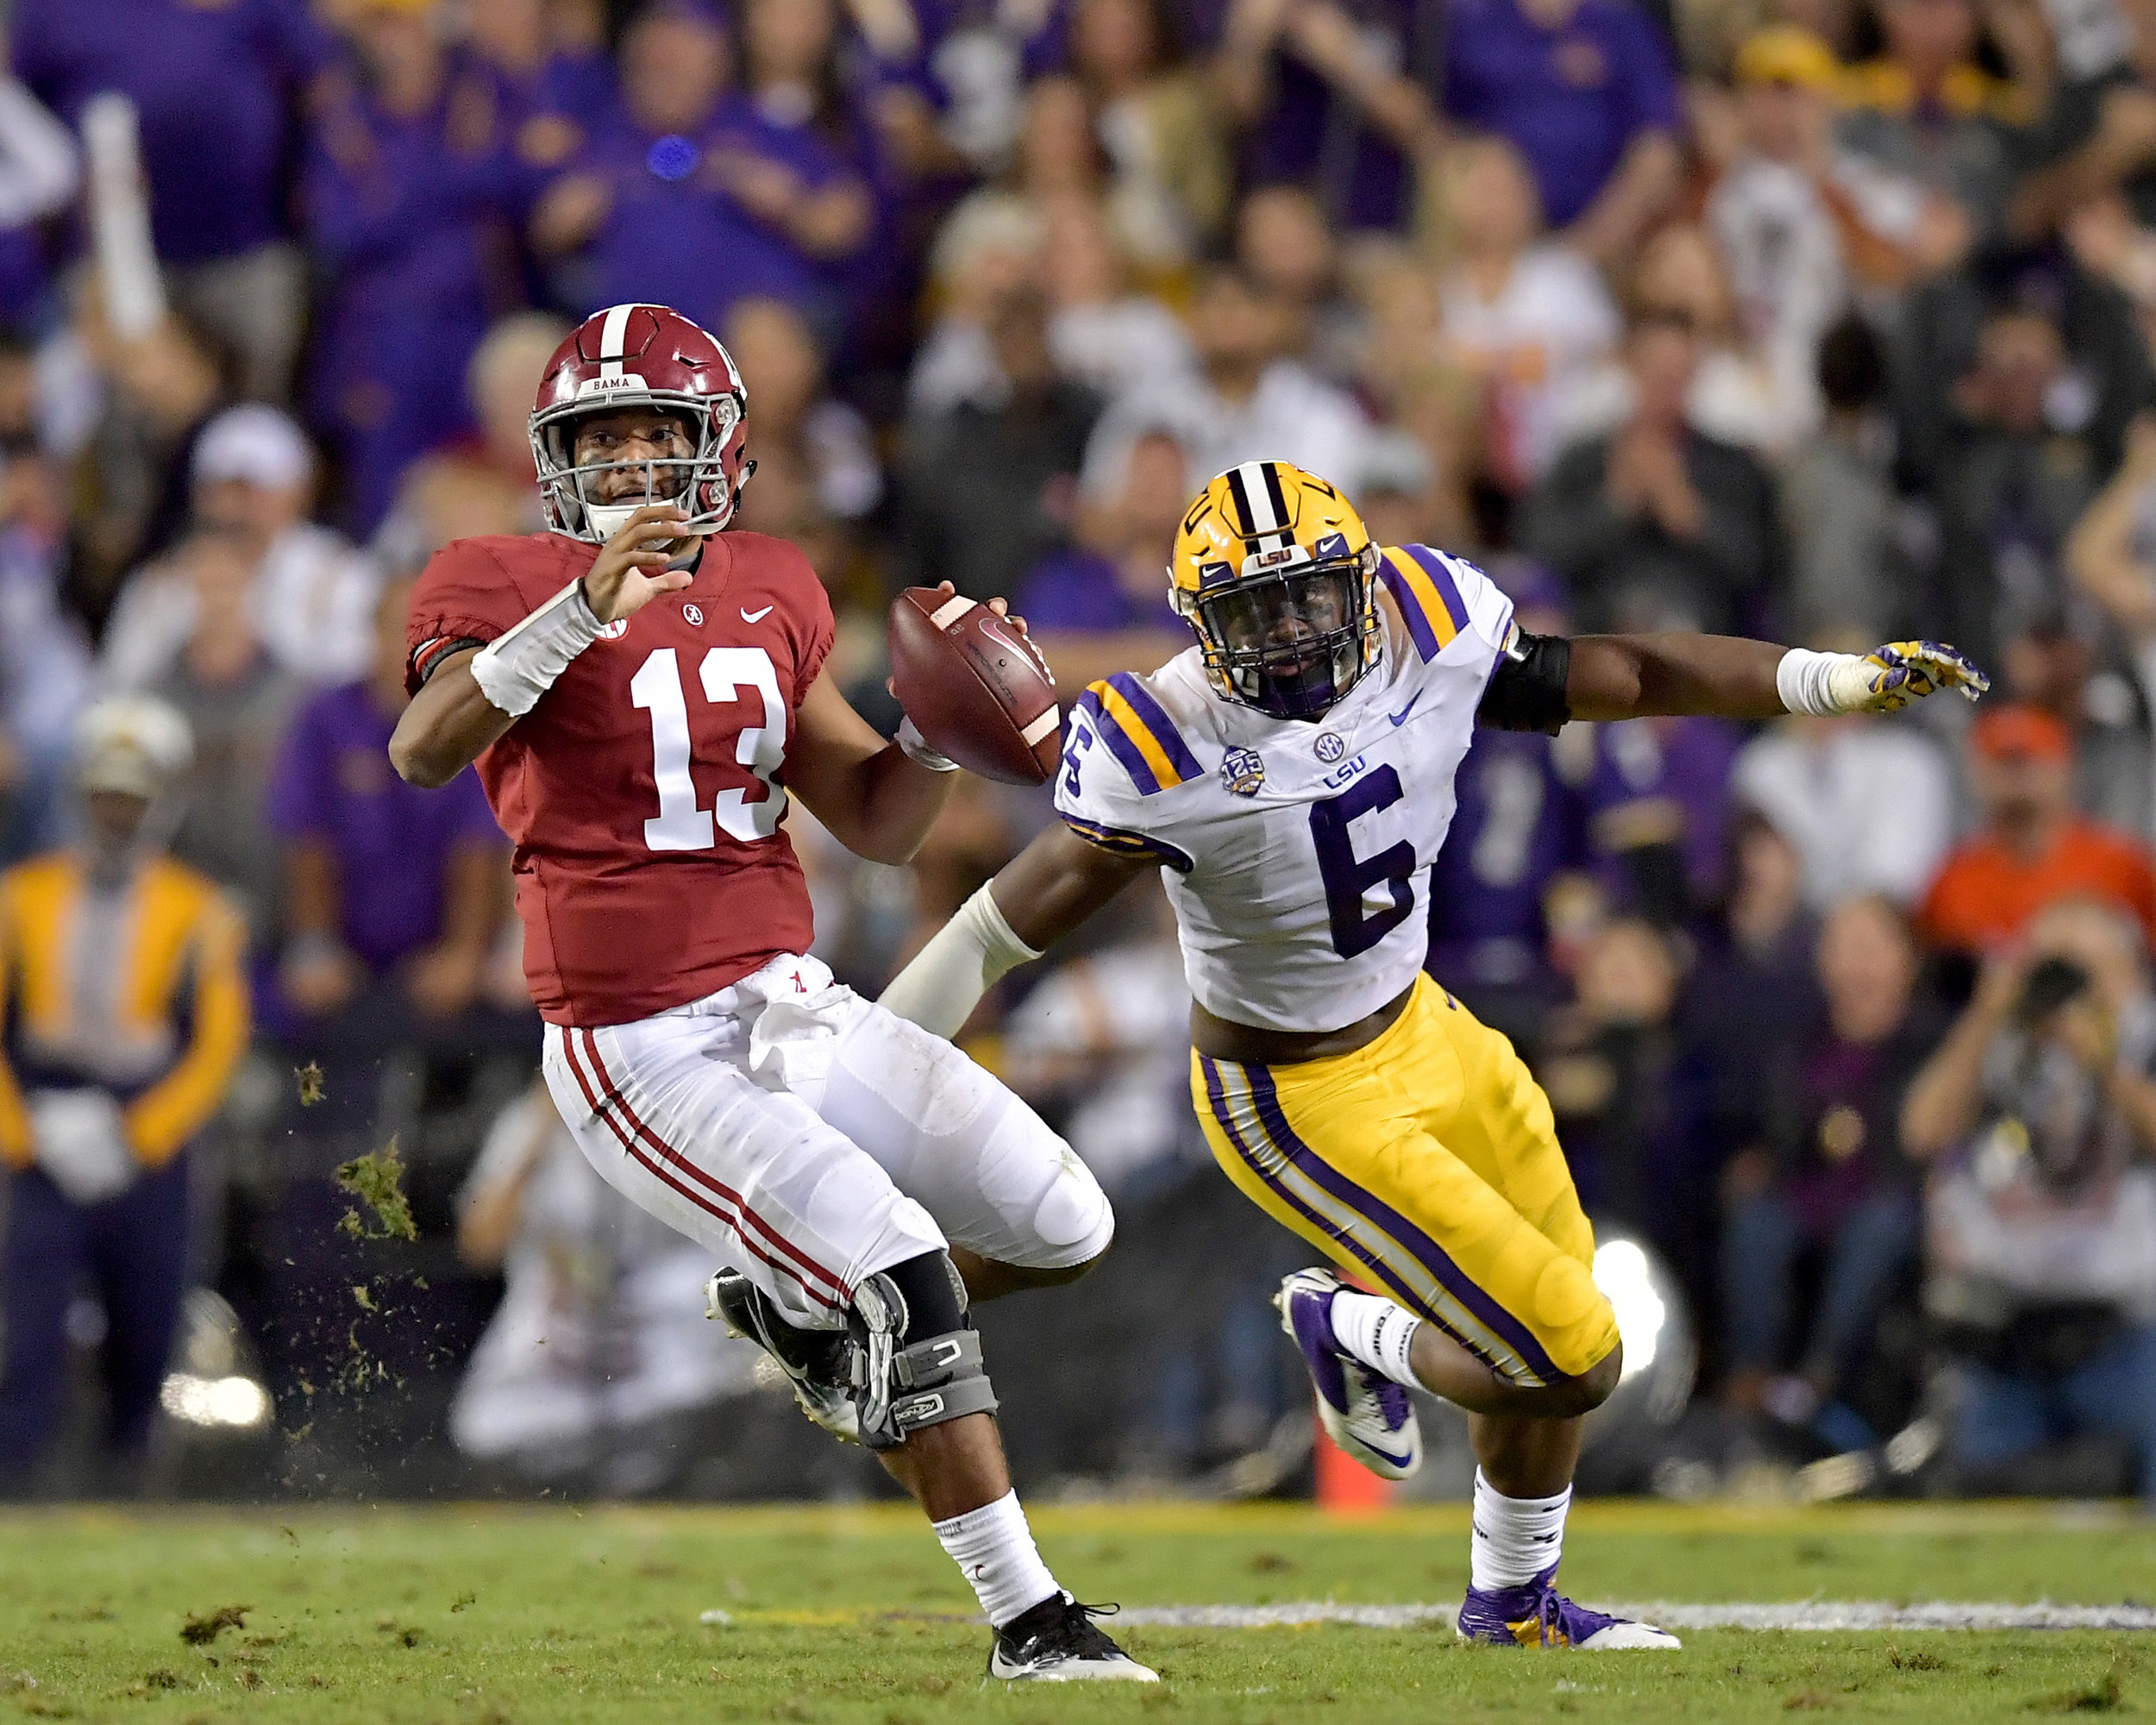 Alabama Crimson Tide quarterback Tua Tagovailoa (13) looks to make a play under pressure during the first half of an NCAA football game against the LSU Tigers Saturday, November 3, 2018, at Tiger Stadium in Baton Rouge, La. Alabama wins 29-0. (Photo by Lee Walls)